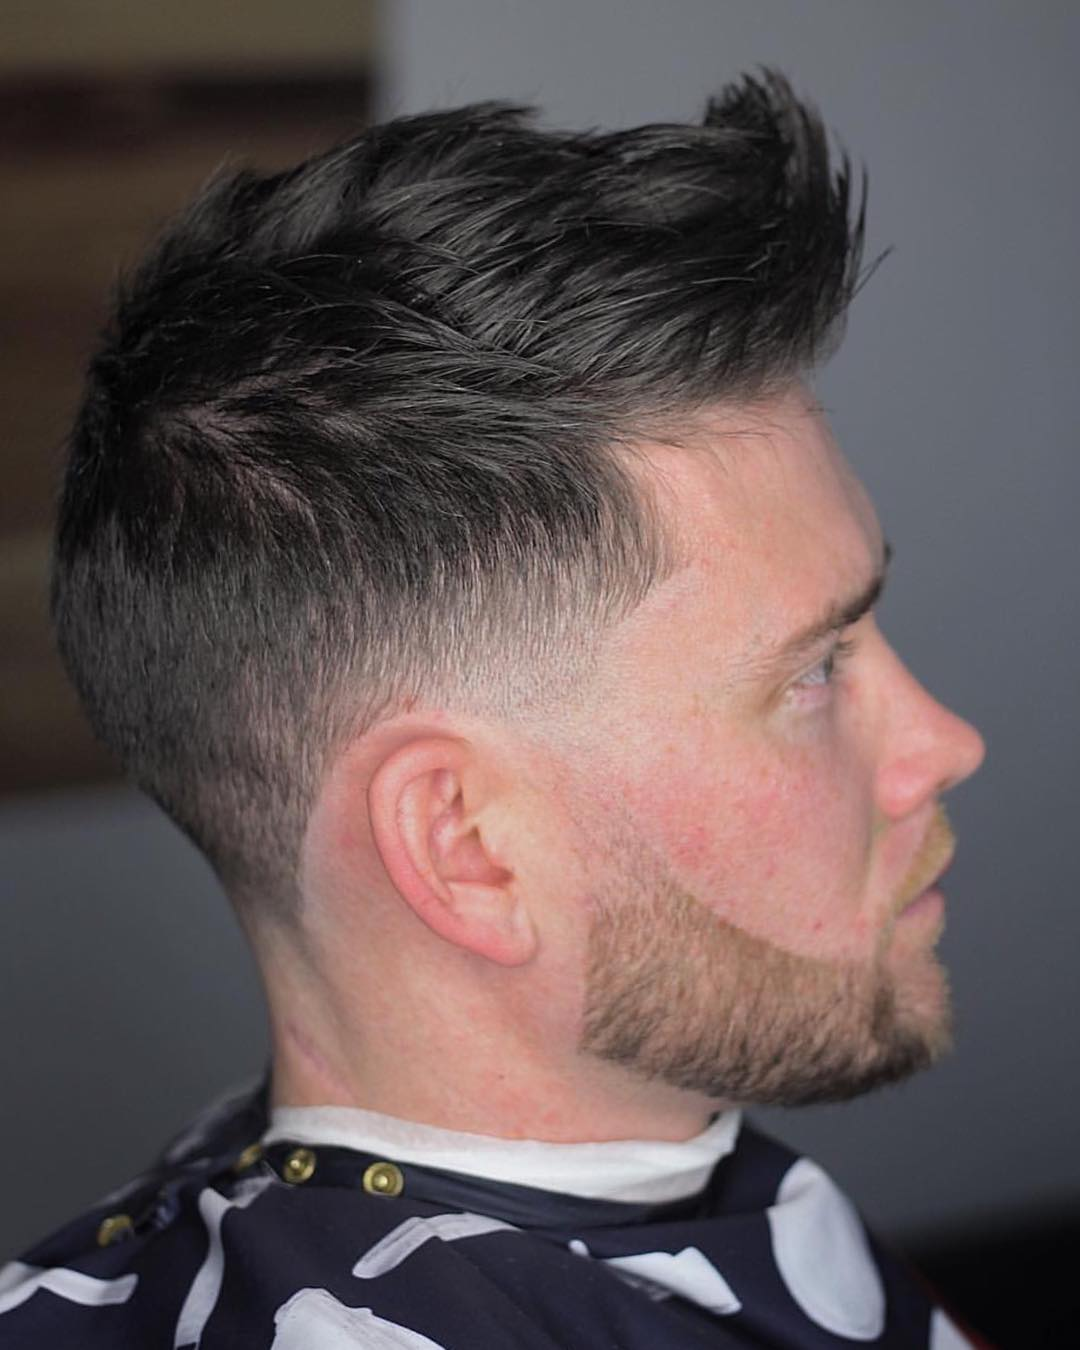 a classic faux hawk is combined with some well trimmed facial hair for unique style